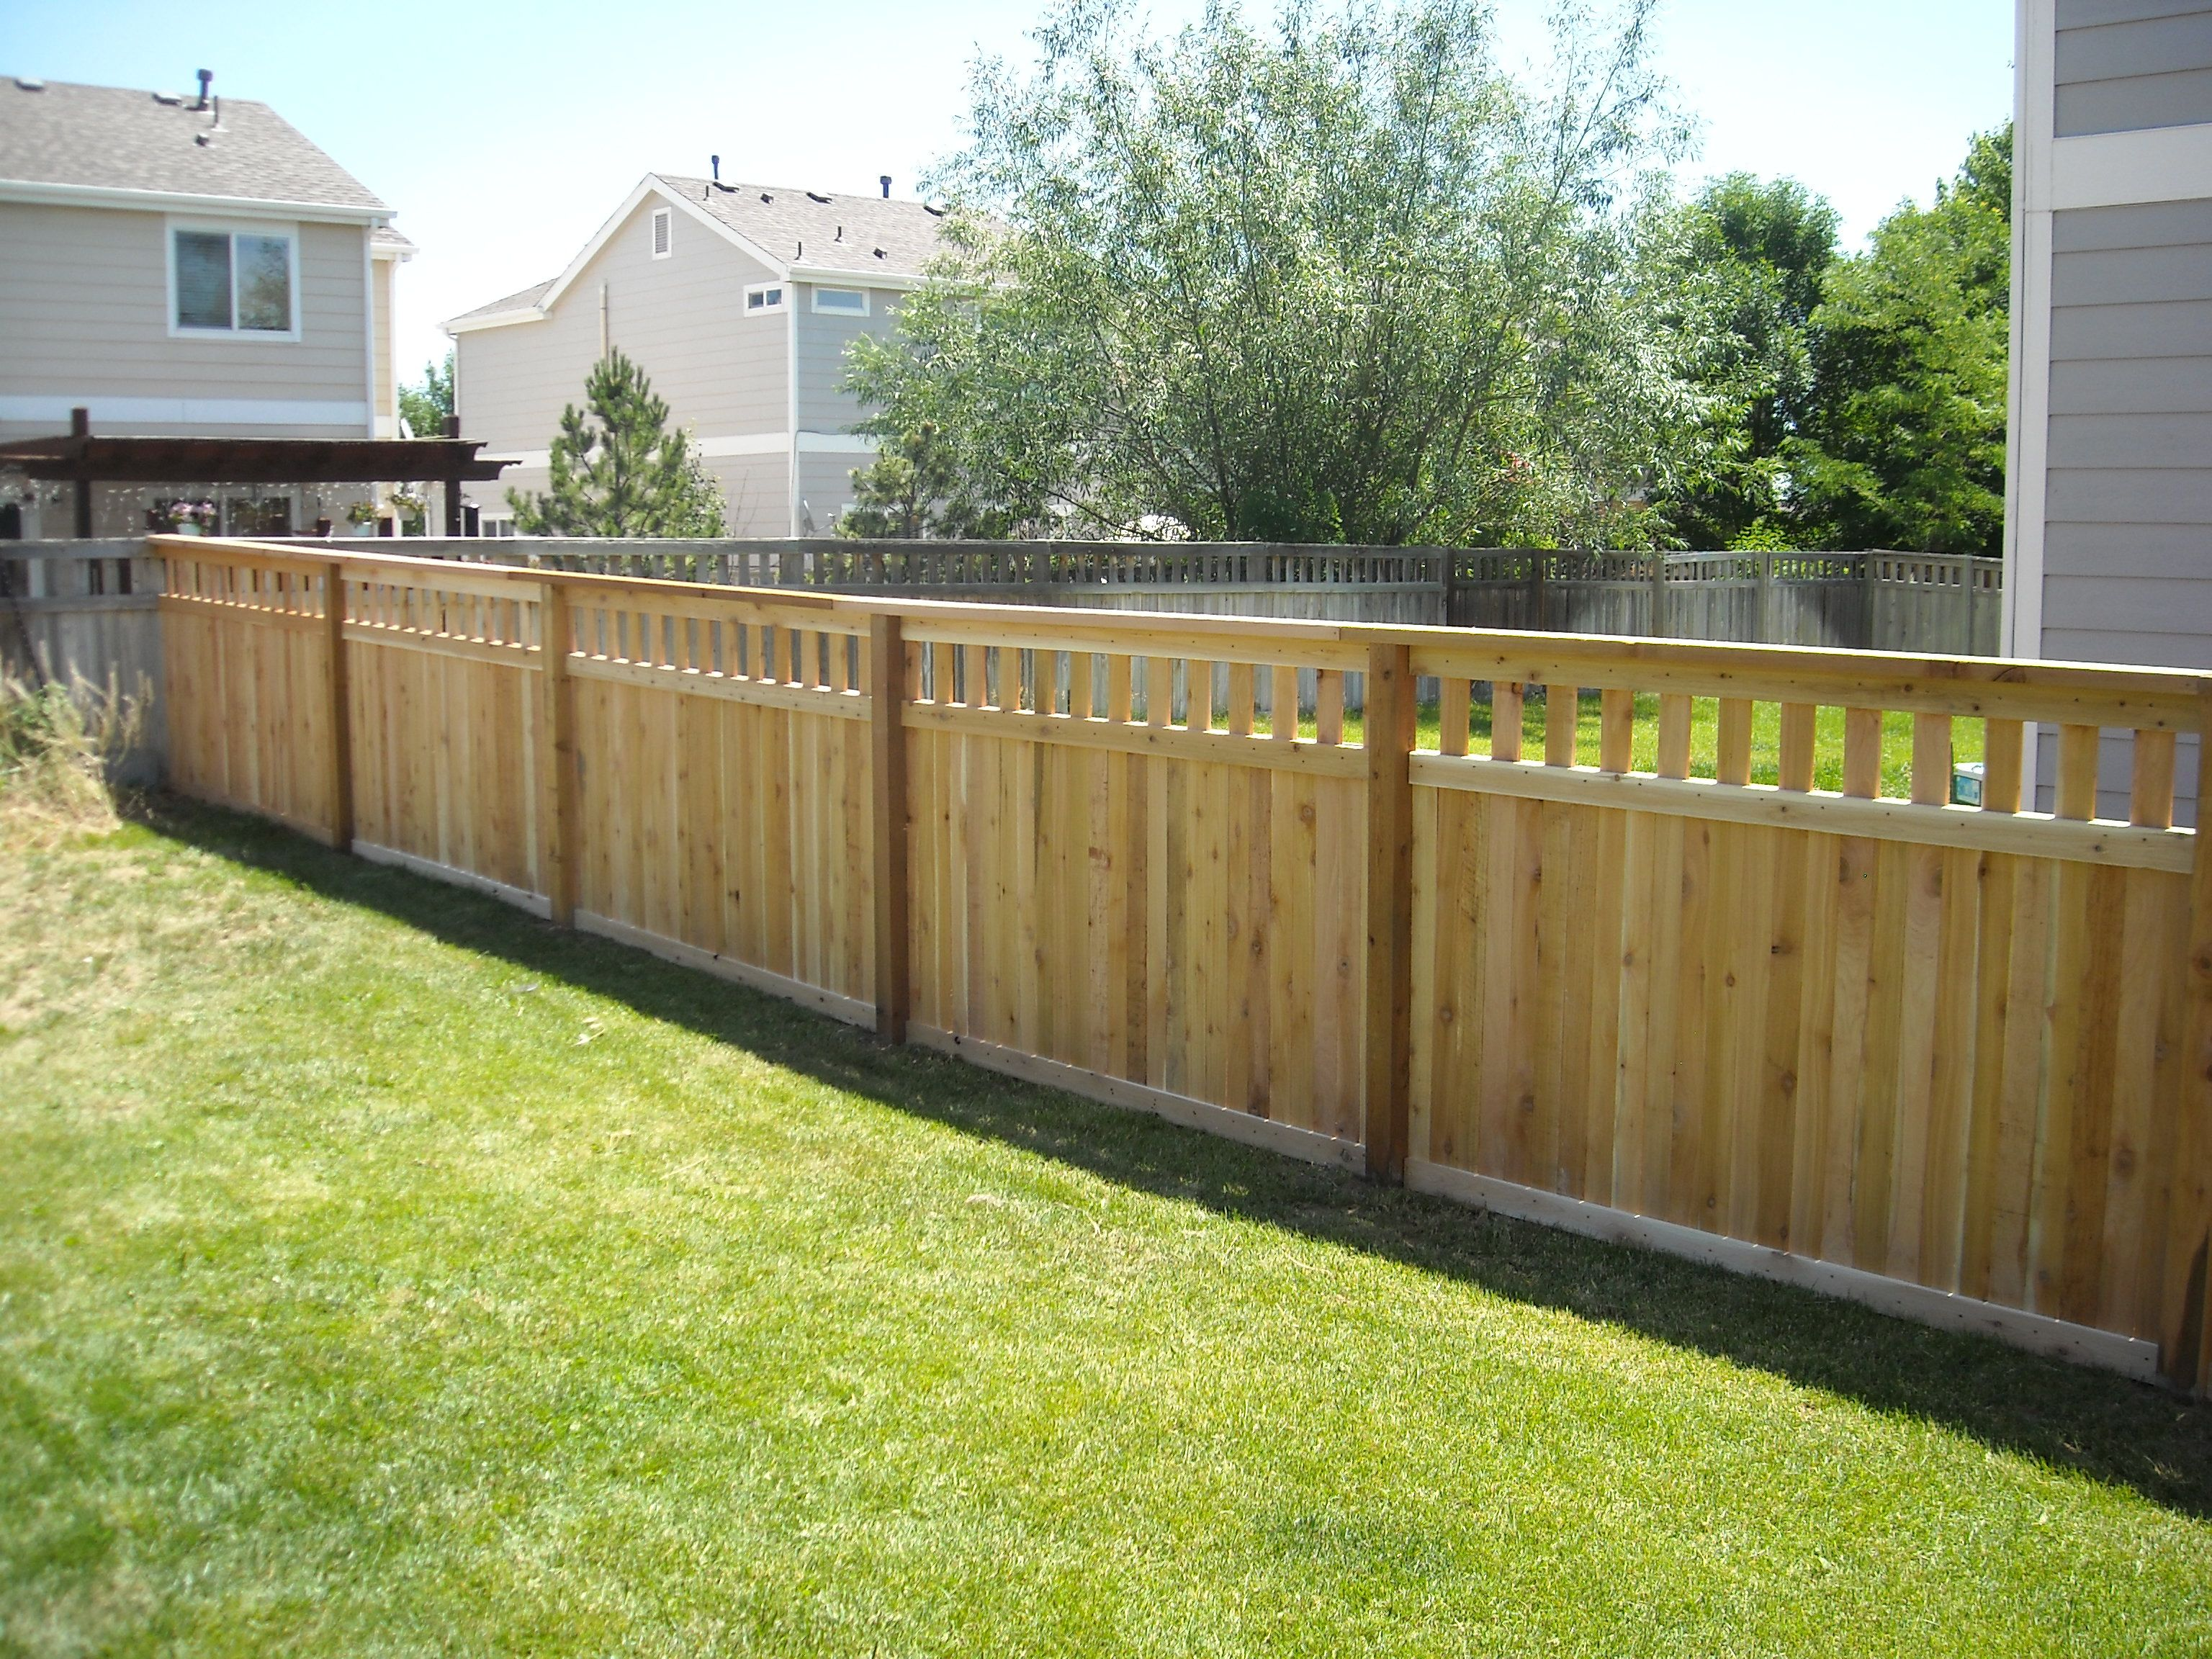 Fence With Open Top Google Search Outdoor Decor Fence Outdoor